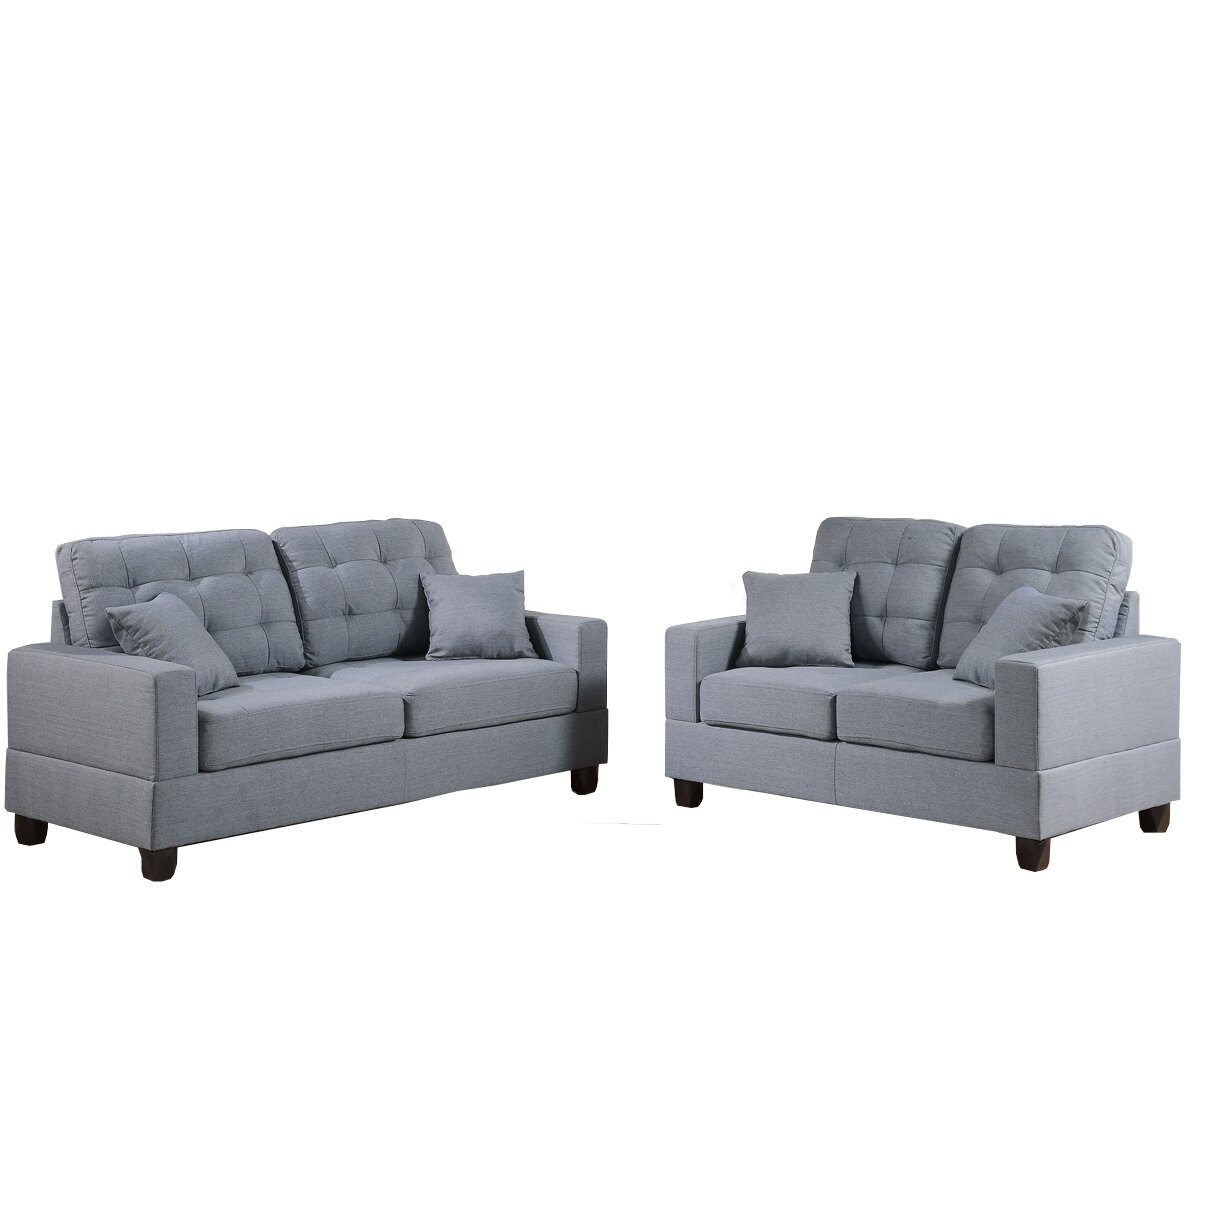 Poundex Bobkona Aria Sofa And Loveseat Set Reviews Wayfair